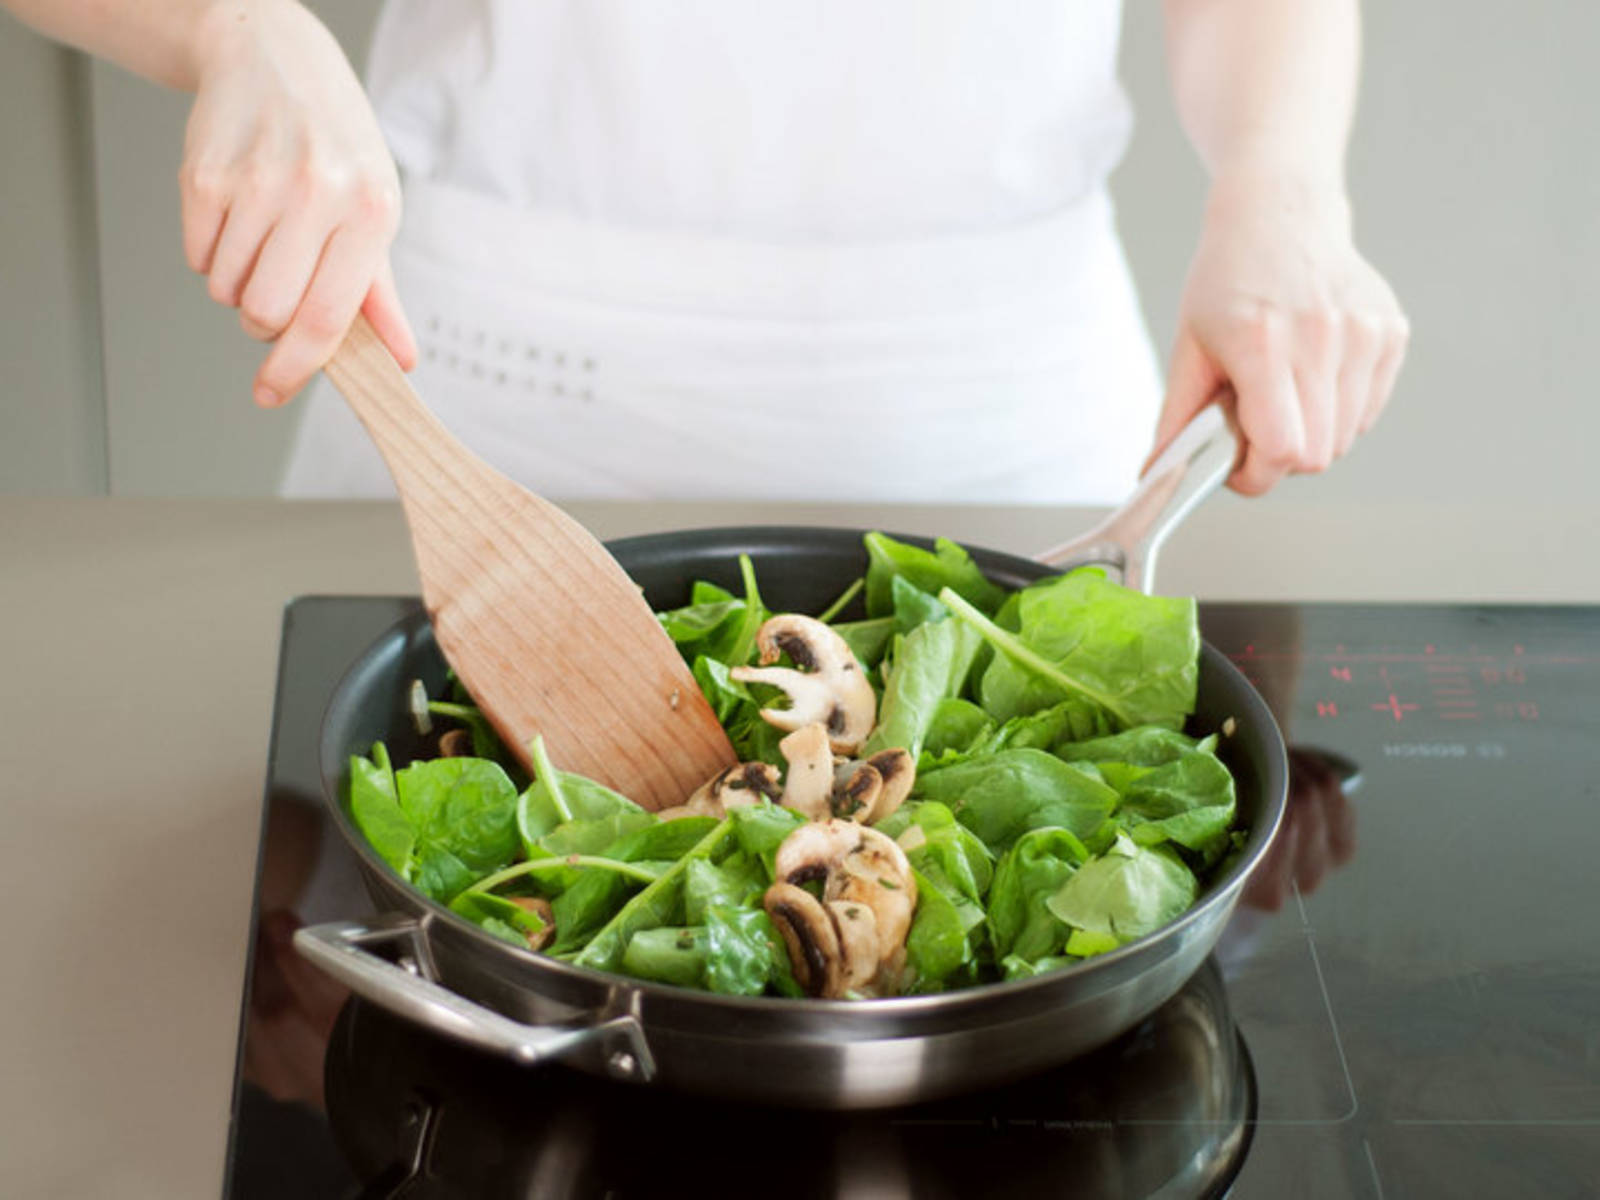 Add oil to frying pan and sauté onion and garlic over medium heat until fragrant and softened. Add mushrooms and thyme and cook for a few minutes, until mushrooms start to brown; if needed, add a bit more oil. Add spinach and cook until wilted, stirring often. Season with salt and pepper. Set aside.